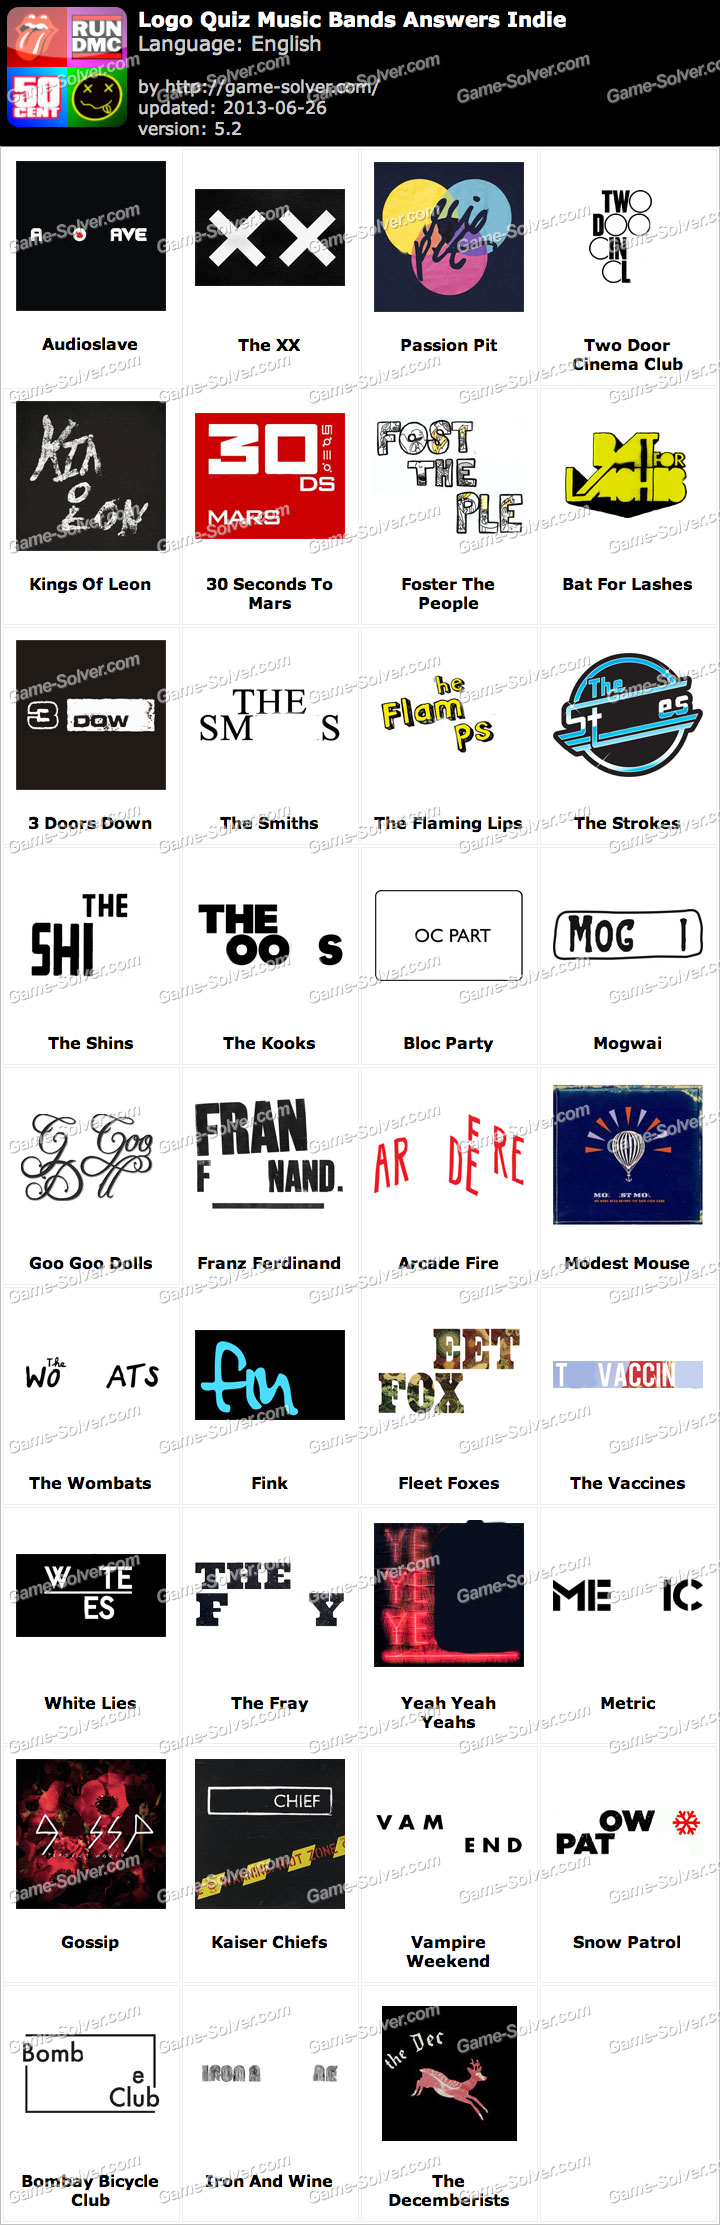 logo quiz music bands answers indie game solver